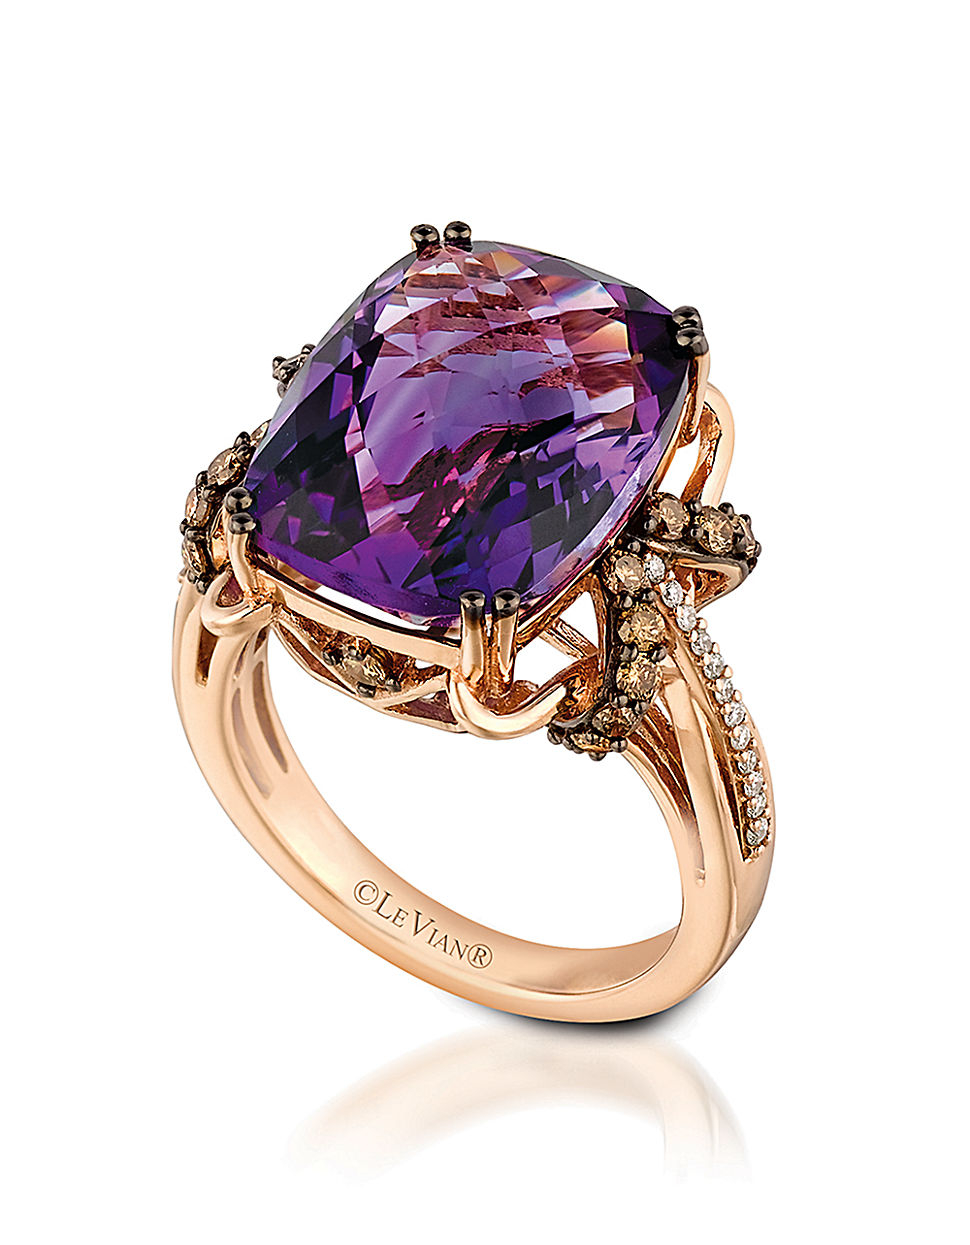 Le Vian 14k Rose Gold Amethyst And Diamond Ring In Purple